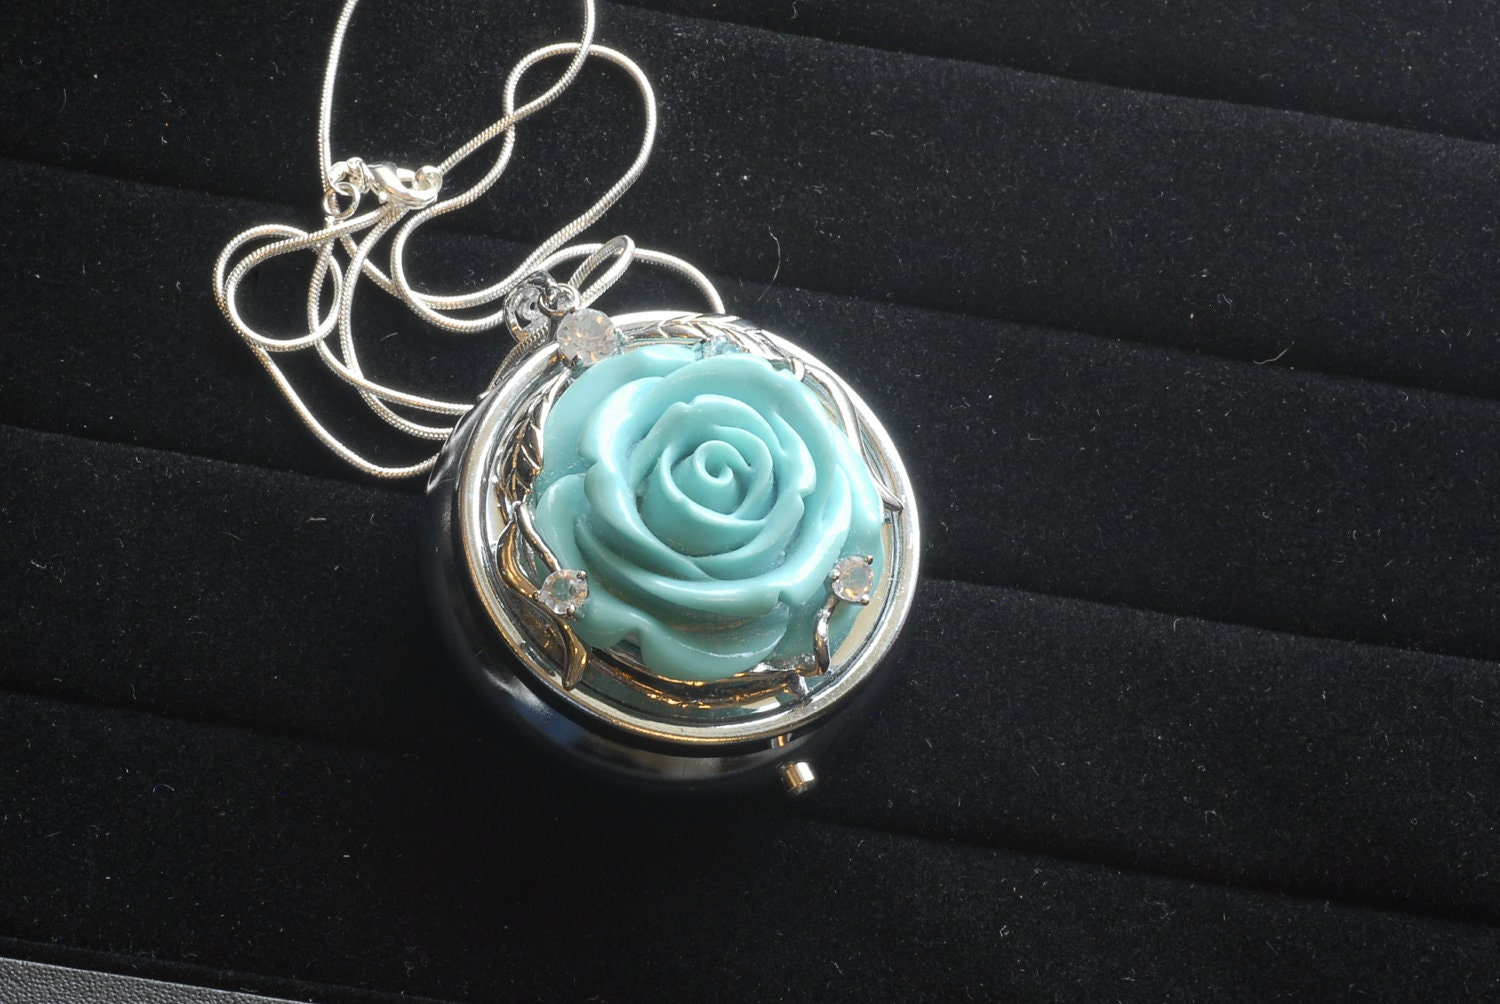 Turquoise Rose Music Box Pendant Necklace With Necklace